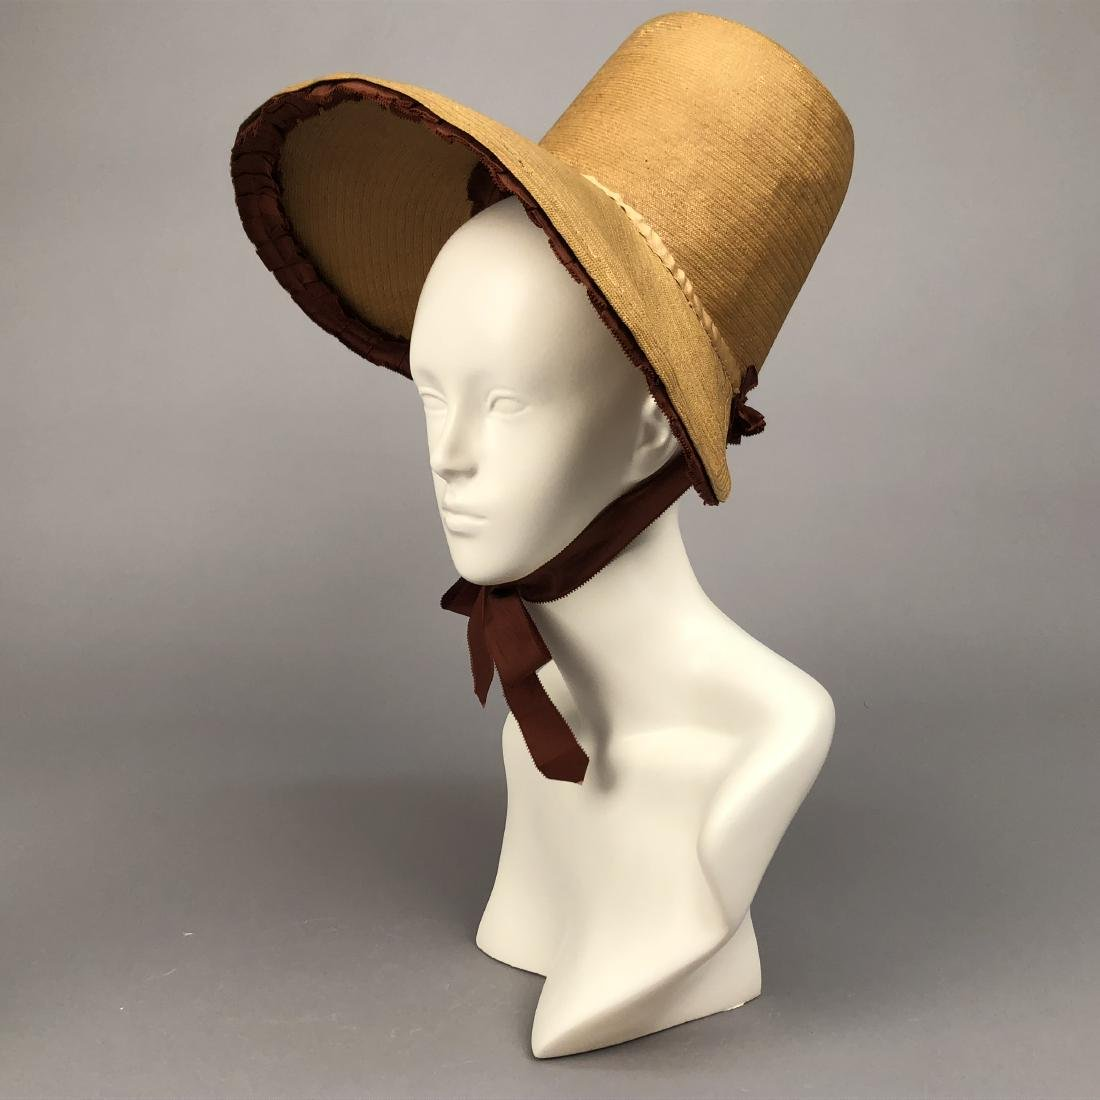 NATURAL LEGHORN STRAW BONNET, c. 1830